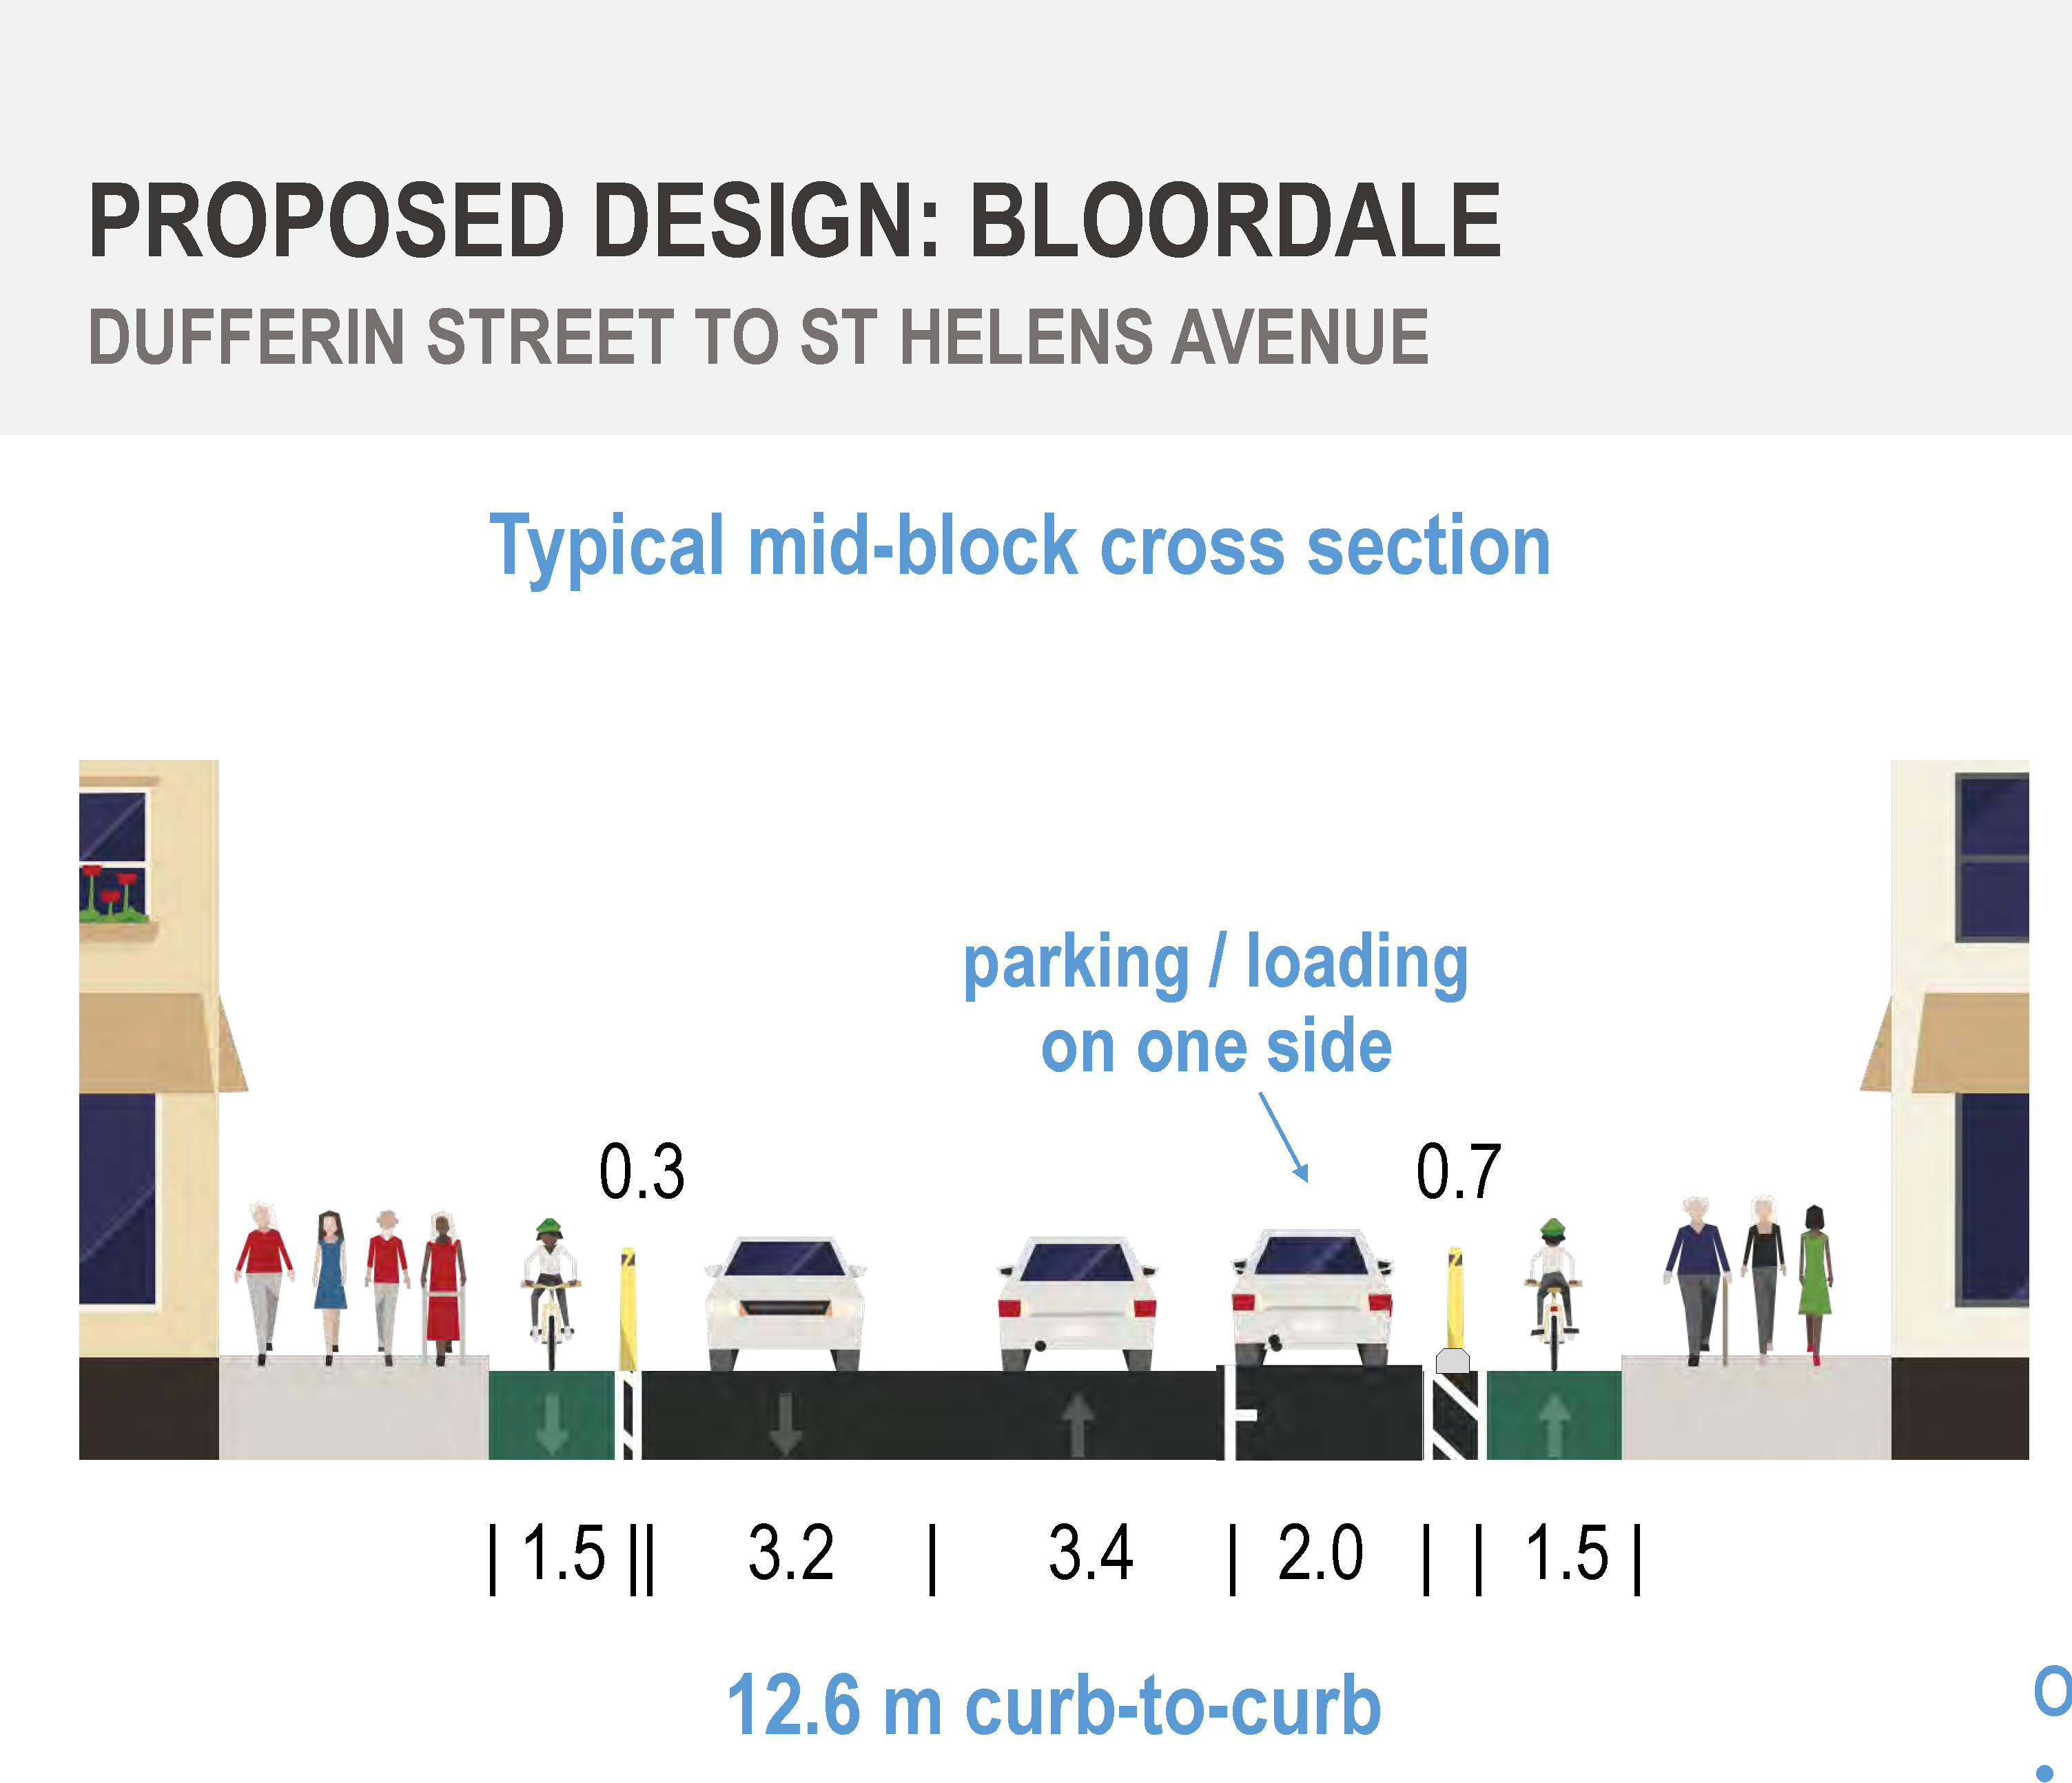 Bloordale proposed design with concrete curbs on one side of the road